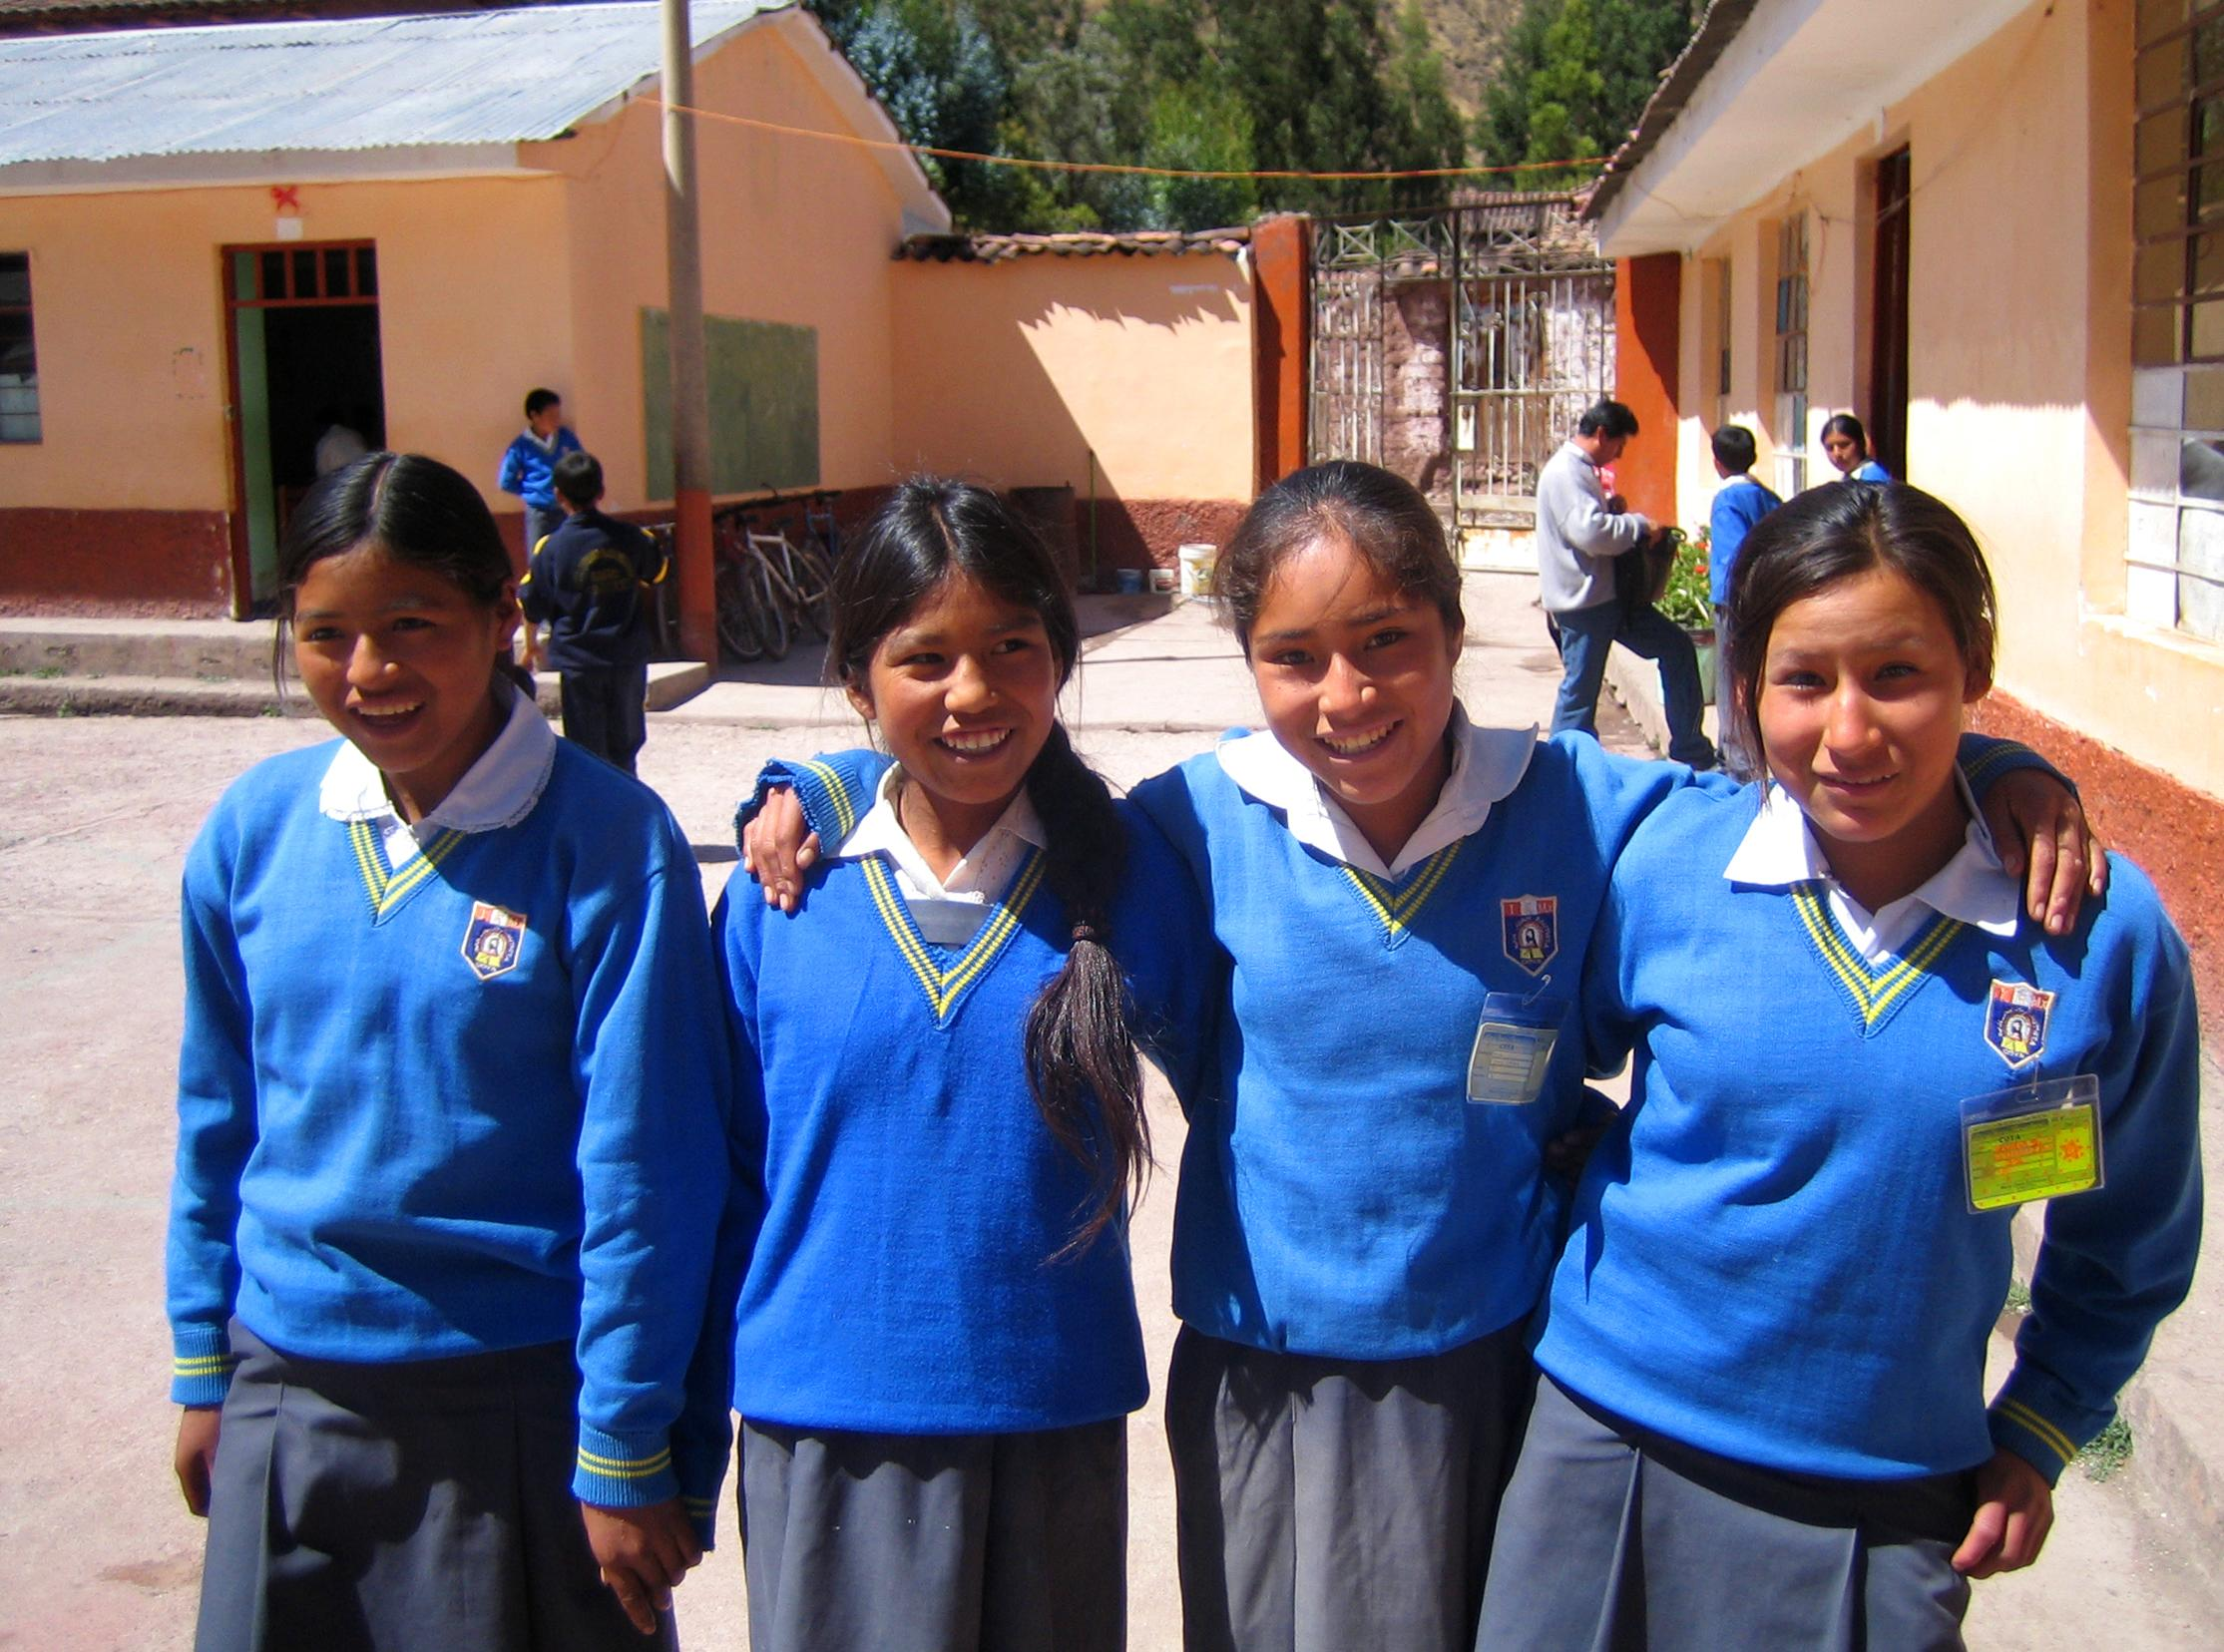 A group of girls pose for a photo outside our volunteer teaching placements in Peru